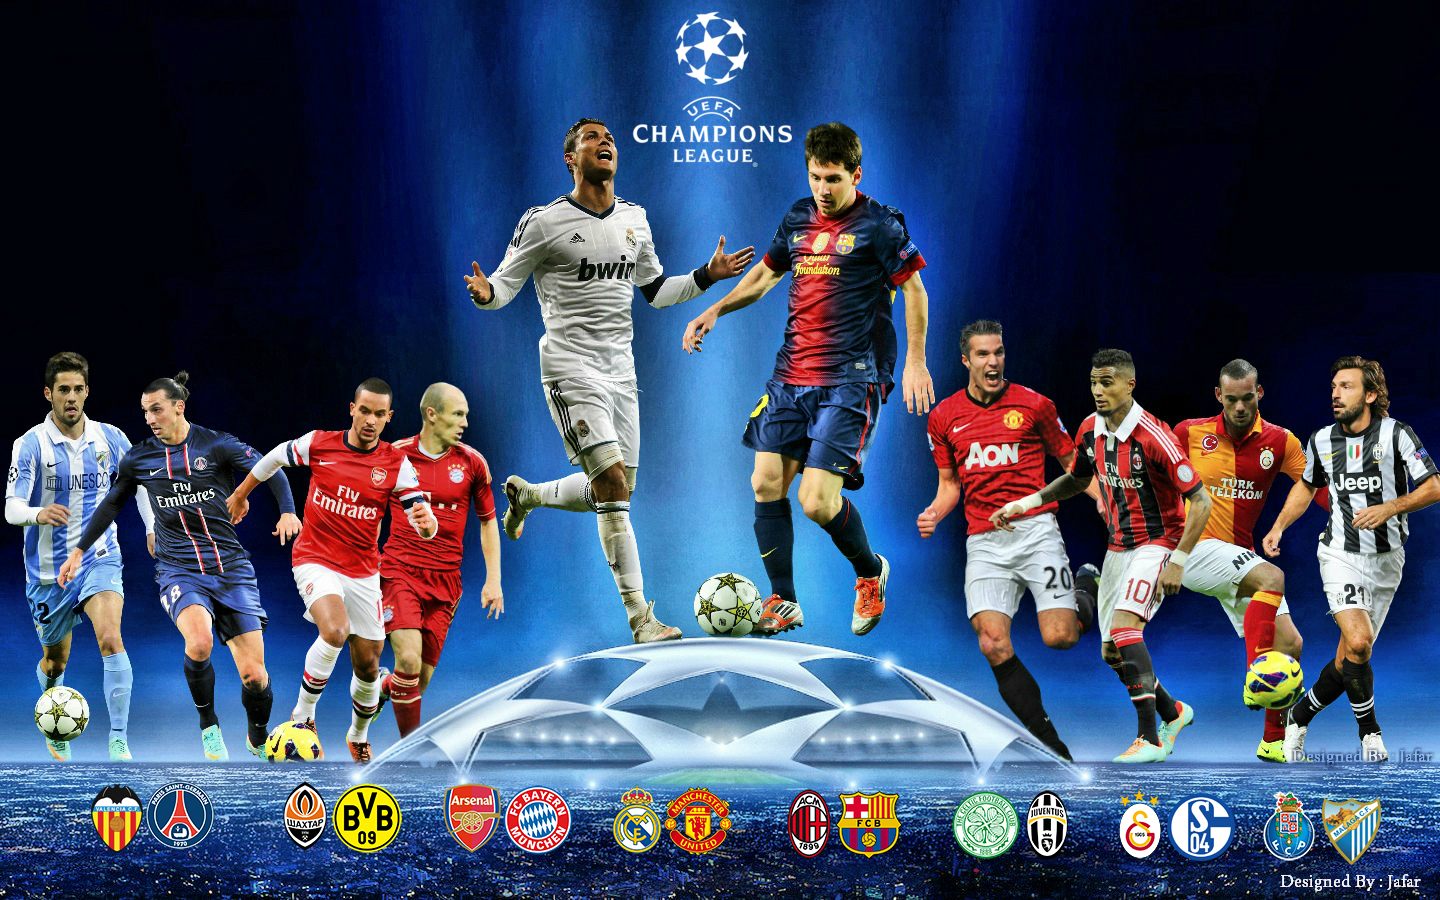 UEFA Champions League Wallpaper HD WallpaperSafari